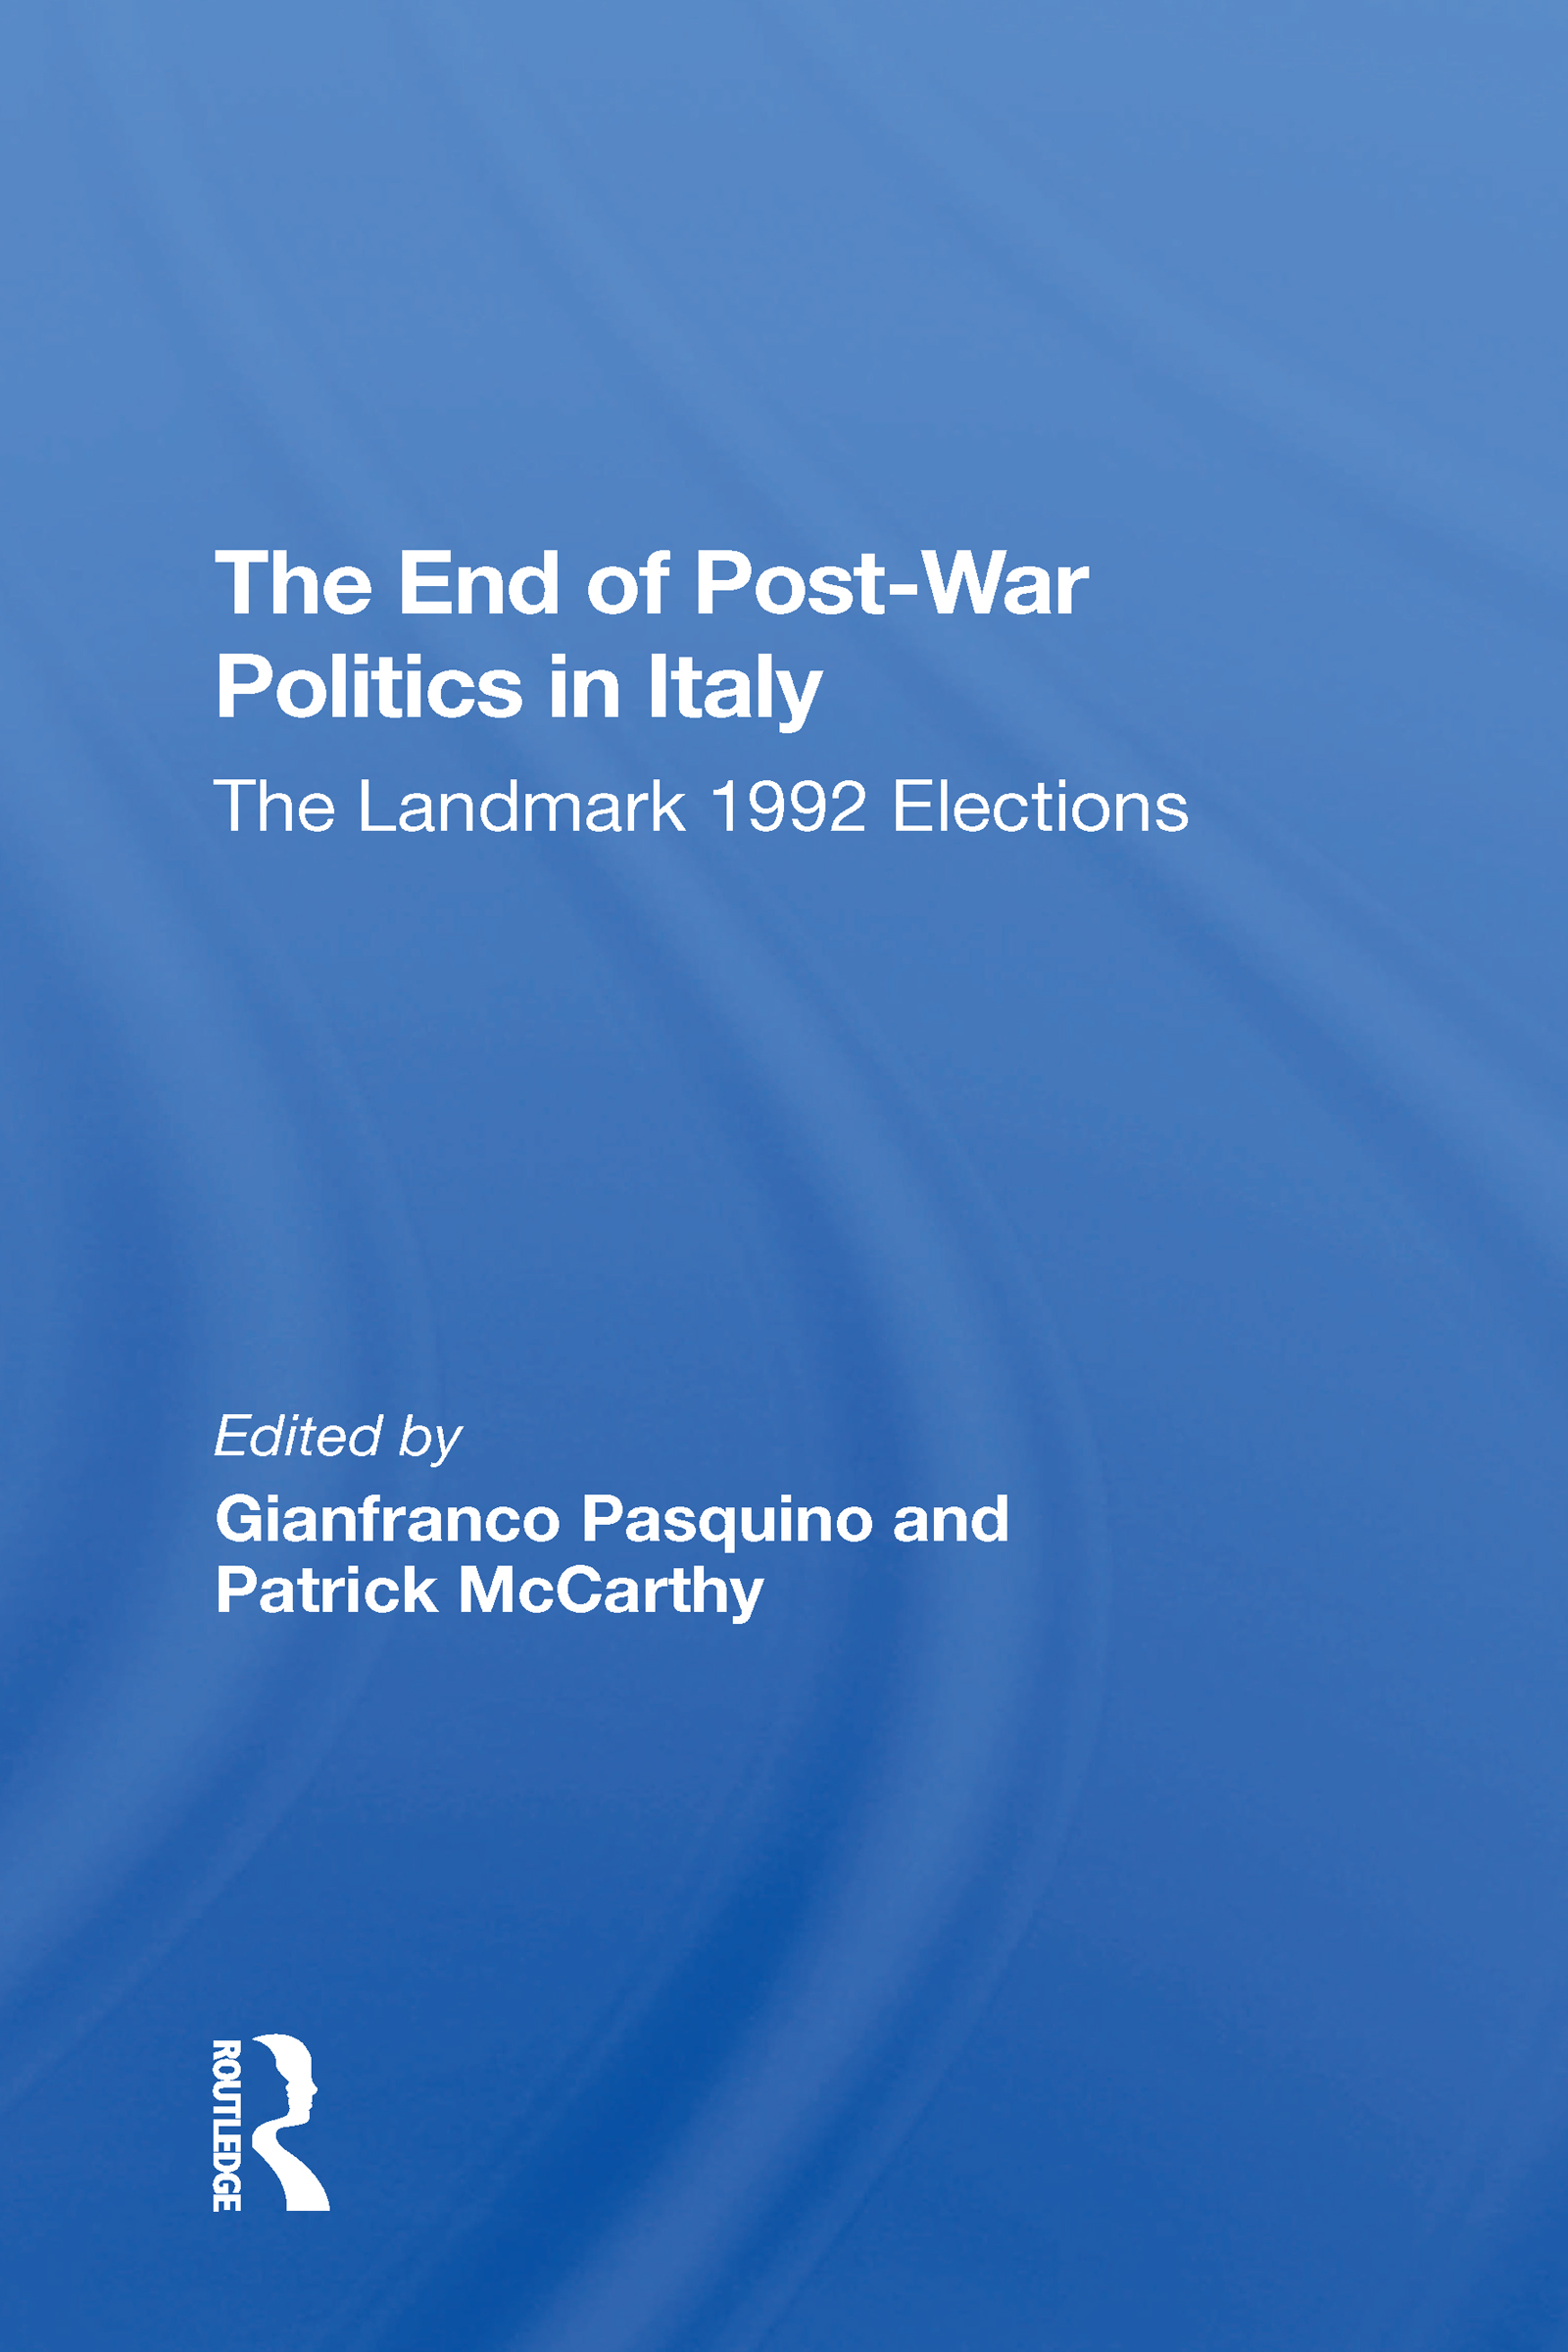 The End Of Post-War Politics In Italy